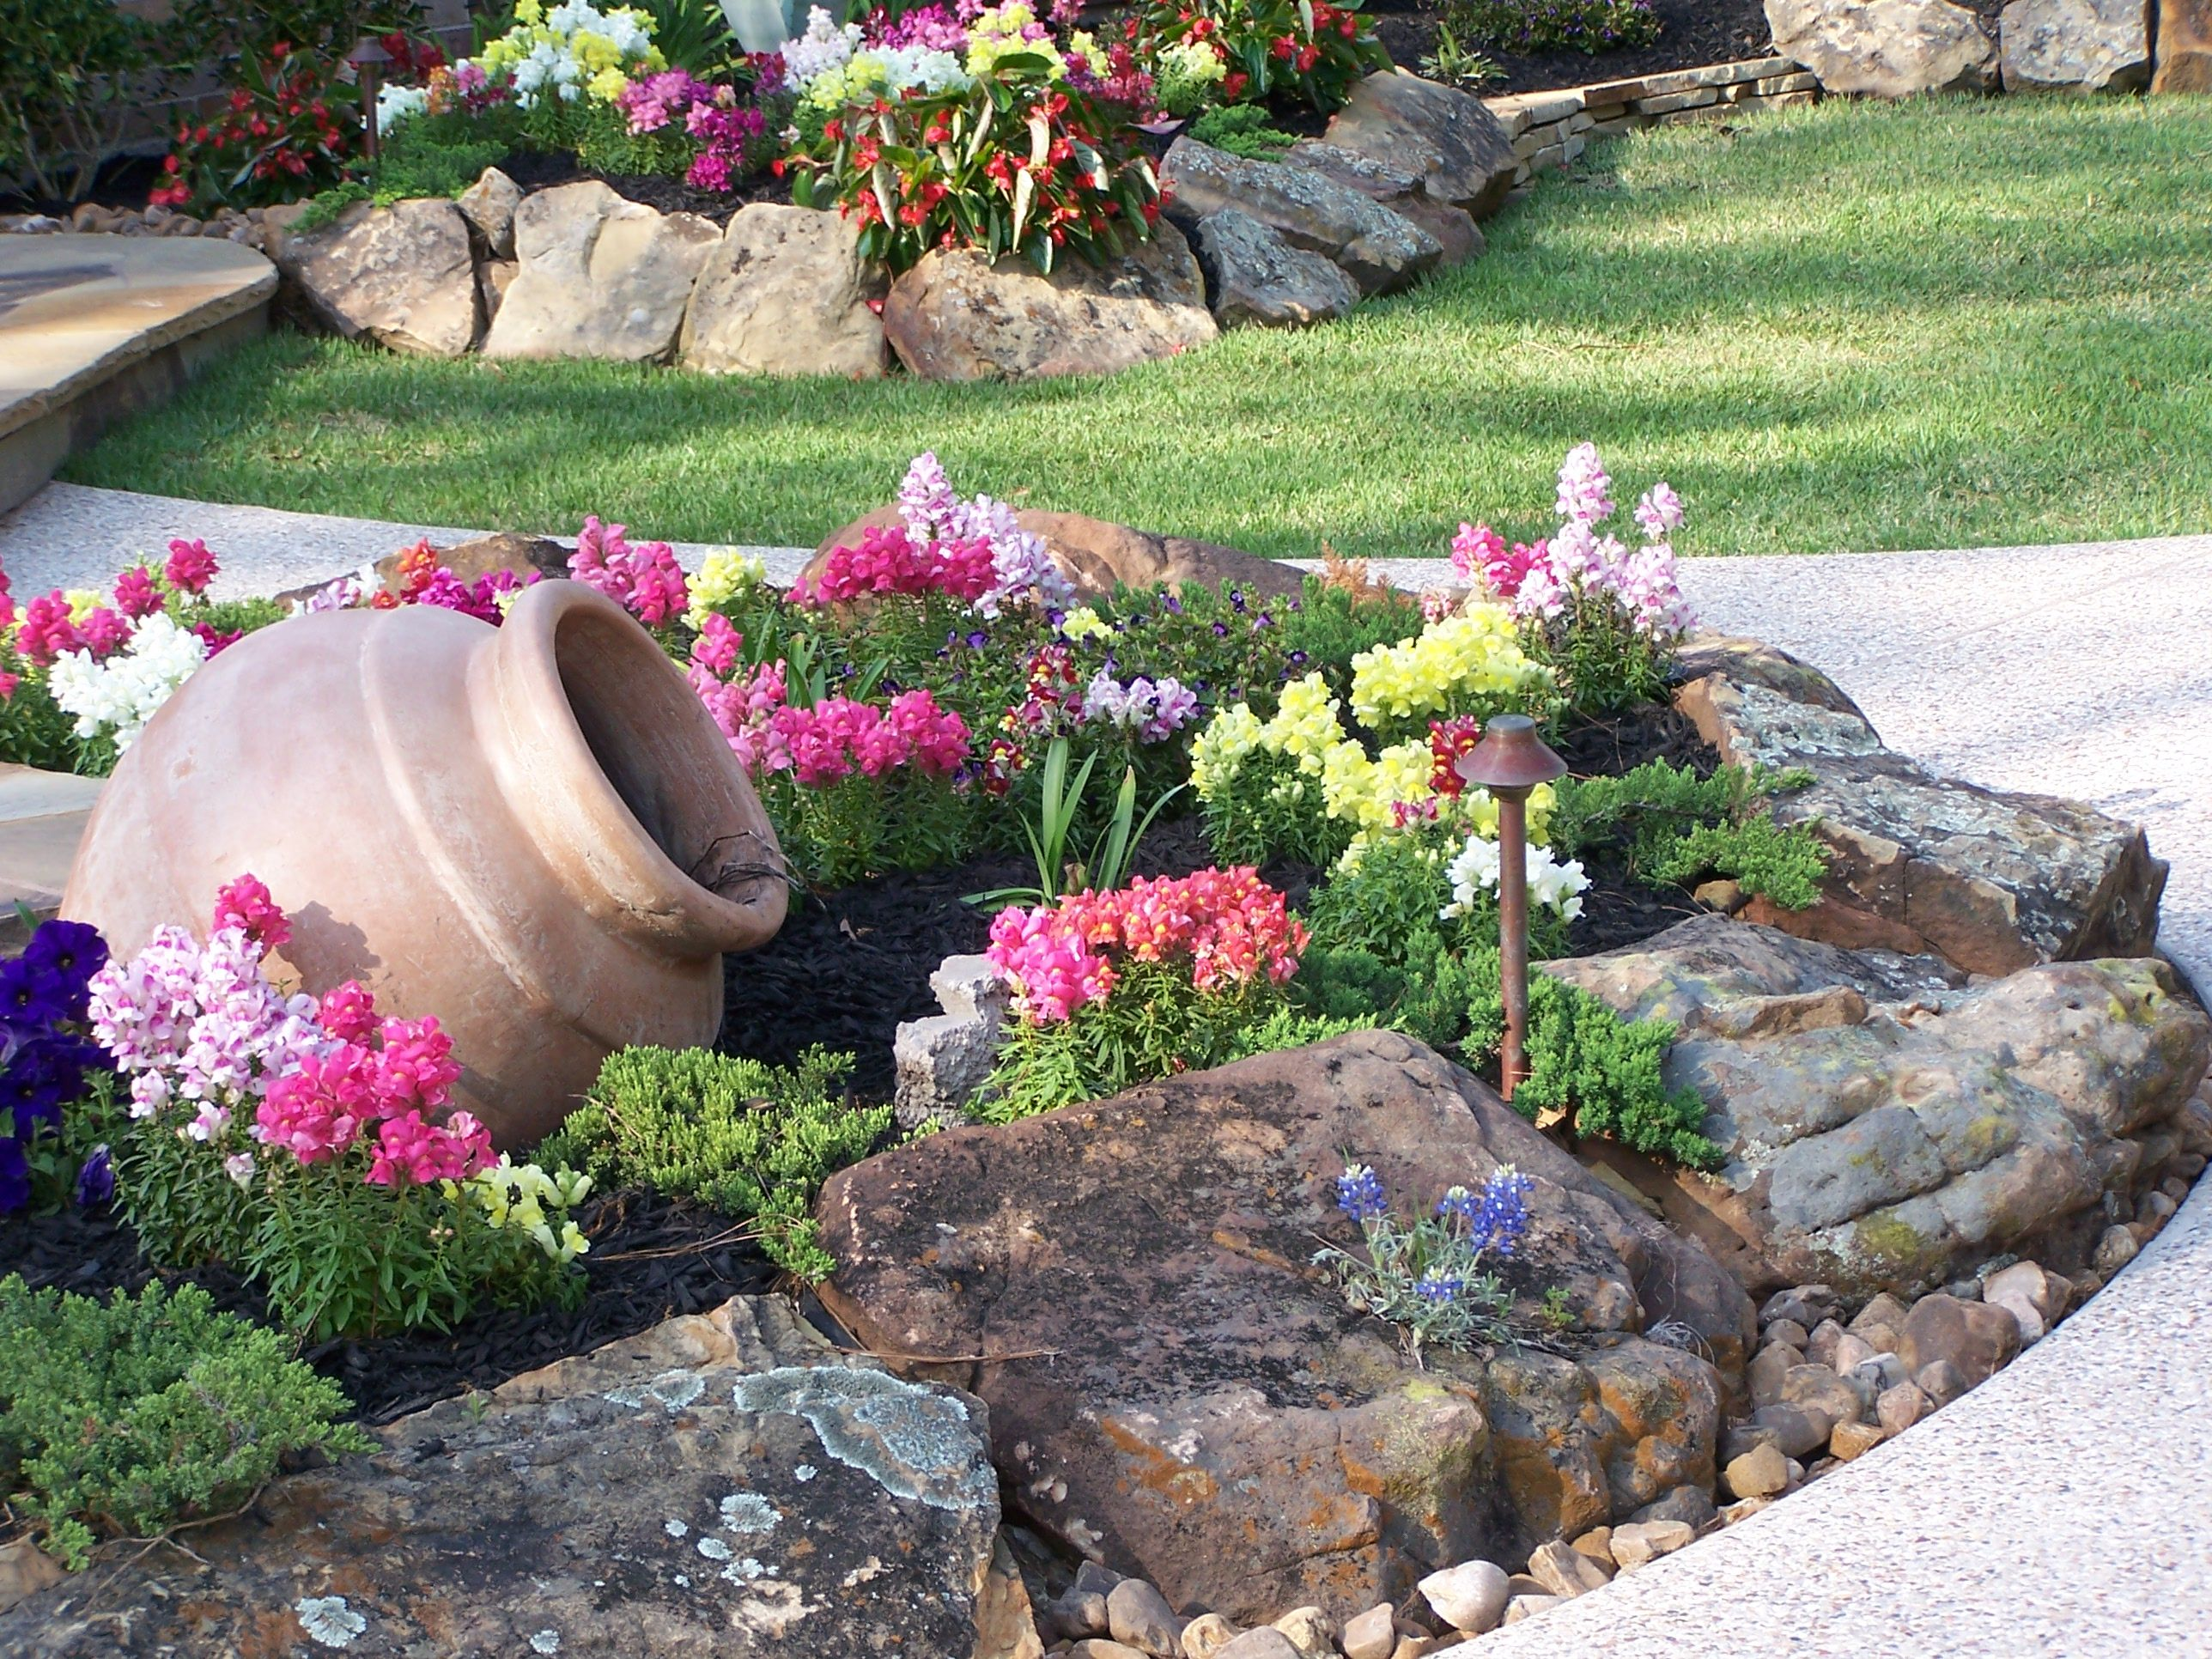 Merveilleux Decorative Rock Landscaping Archives   Page 3 Of 10   Gardening Senses